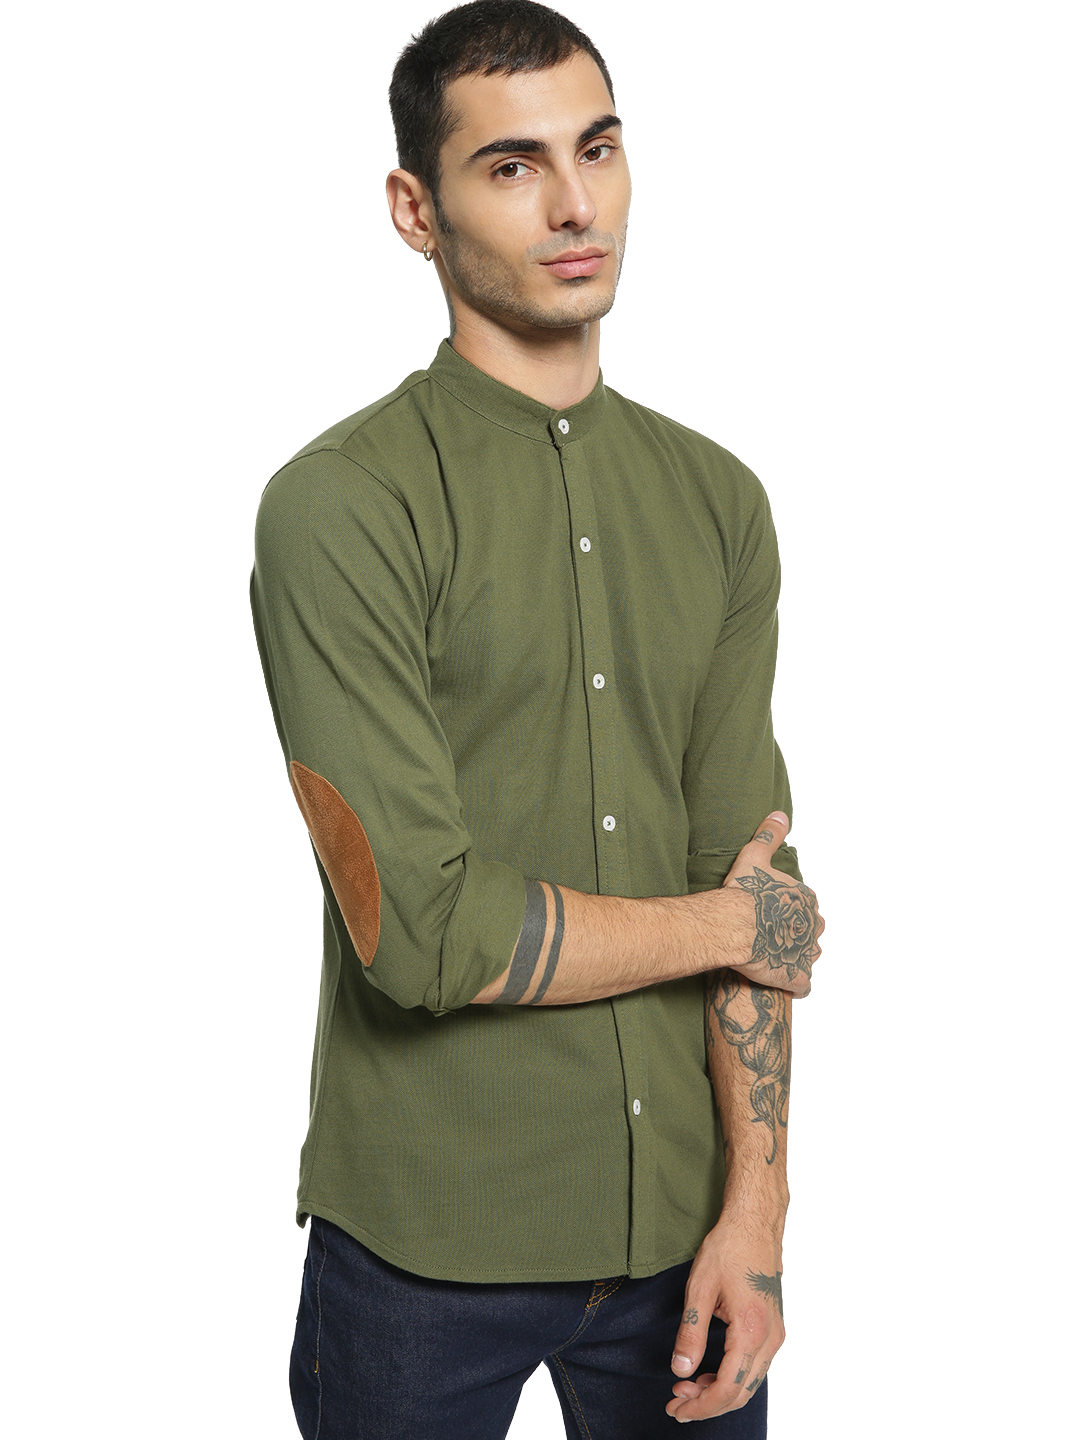 Garcon Green Elbow Patch Knitted Shirt 1